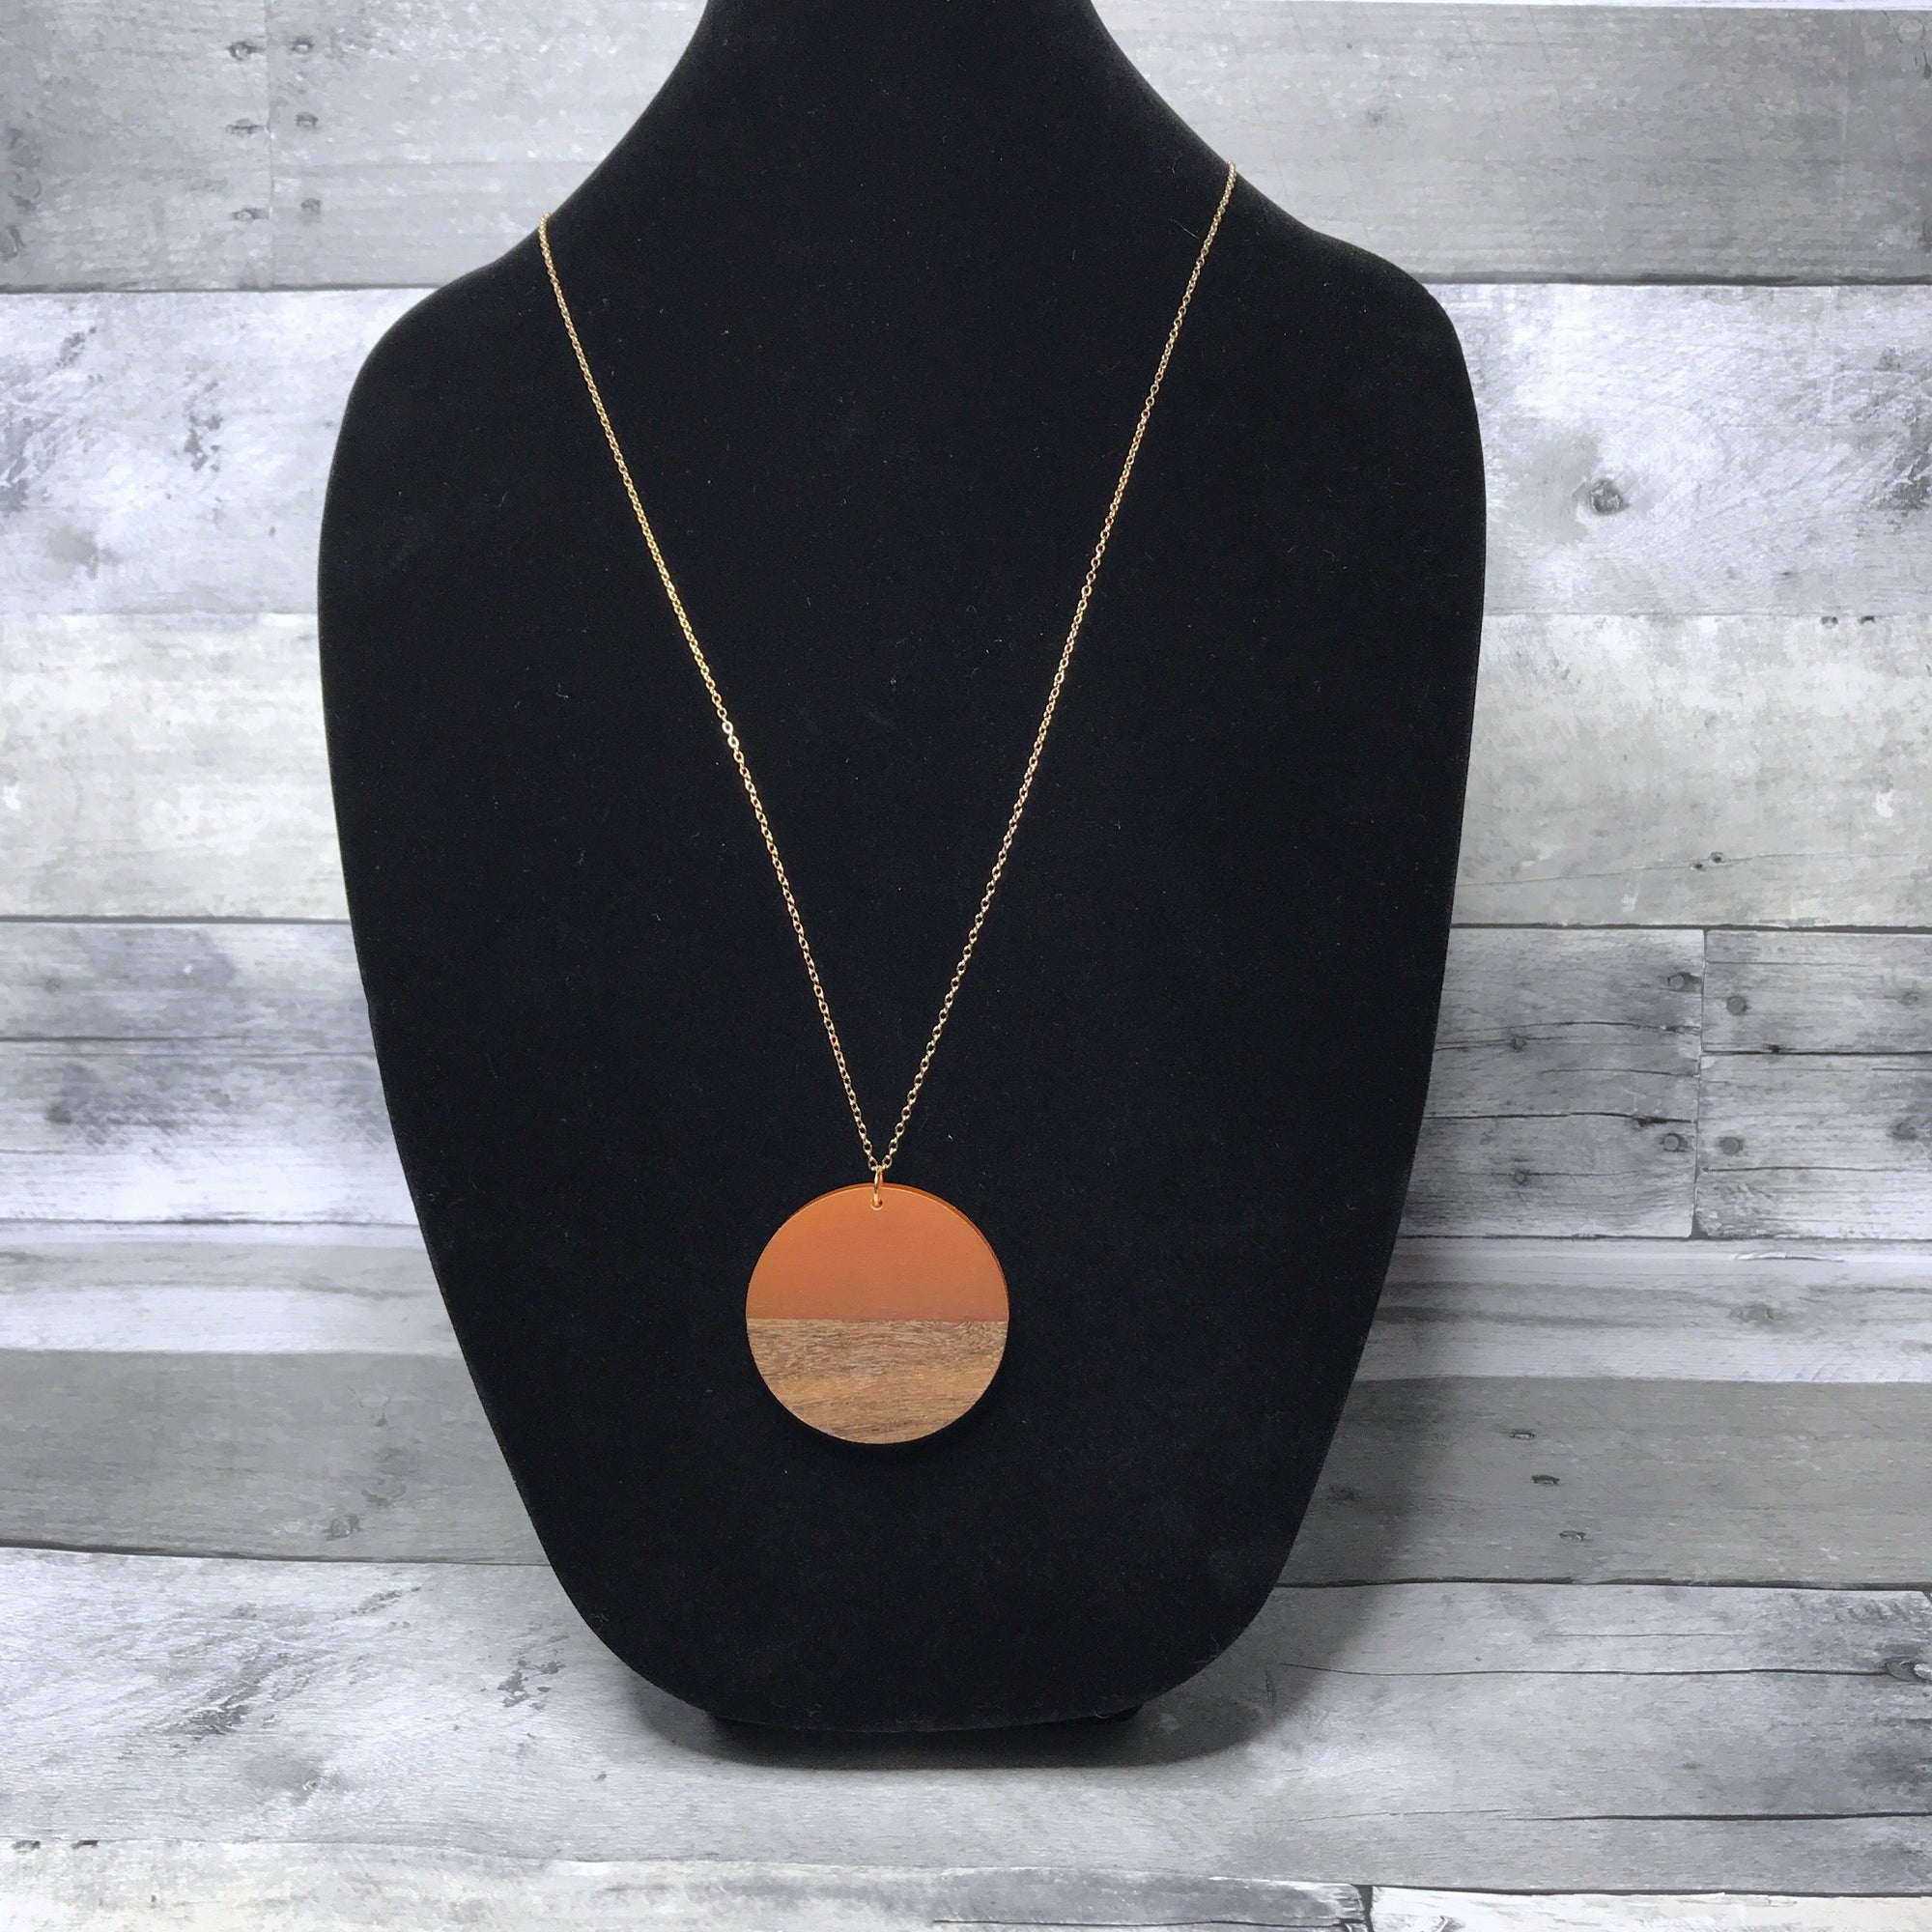 Circle Pendant Necklace women's necklace The Teal Bandit